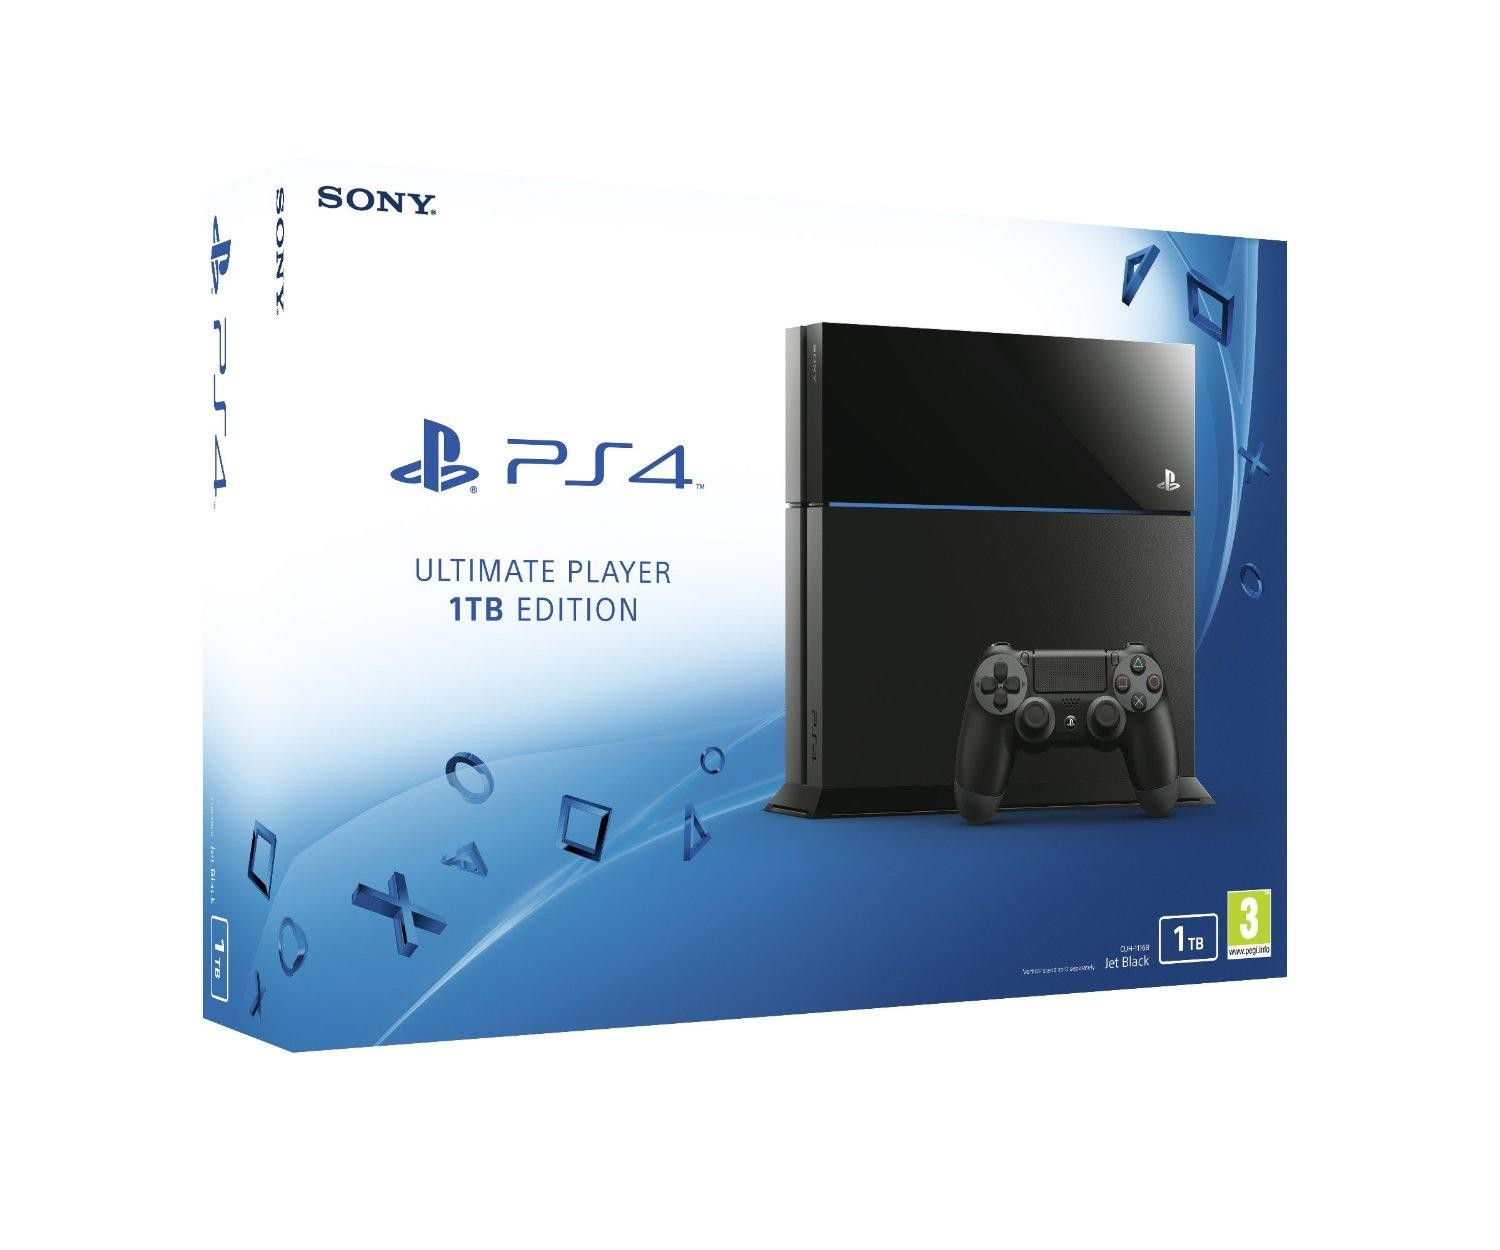 Sony%20PS4%20Ultimate%20Player%20Edition.jpg